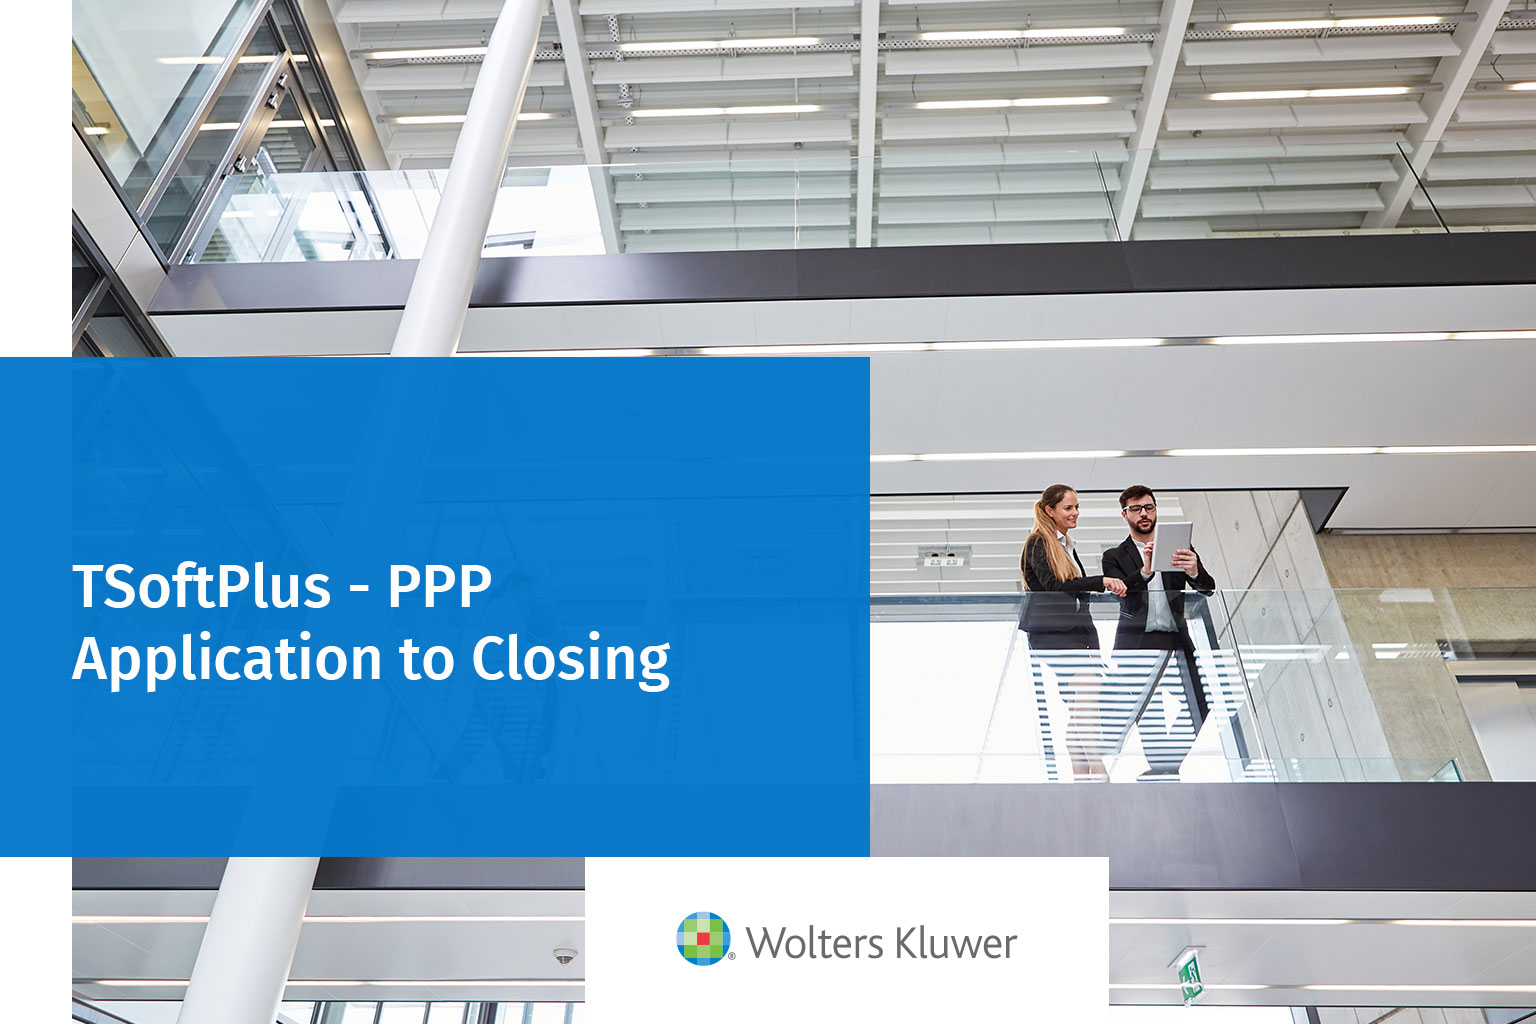 TSoftPlus - PPP Application to Closing